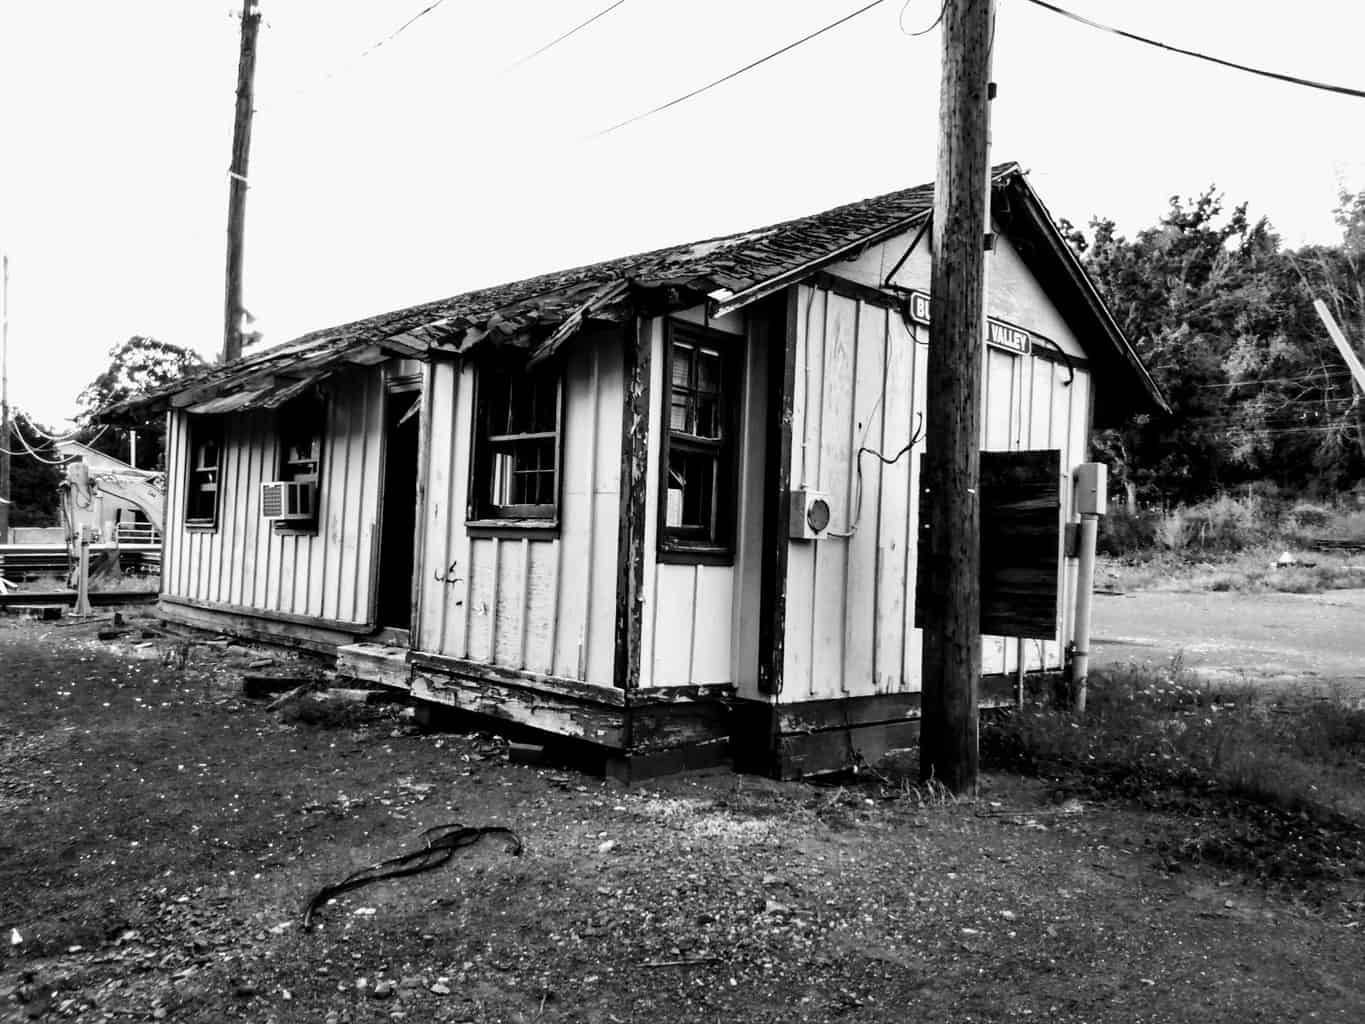 Buckingham Valley Station on the New Hope Railroad Line - Black and White